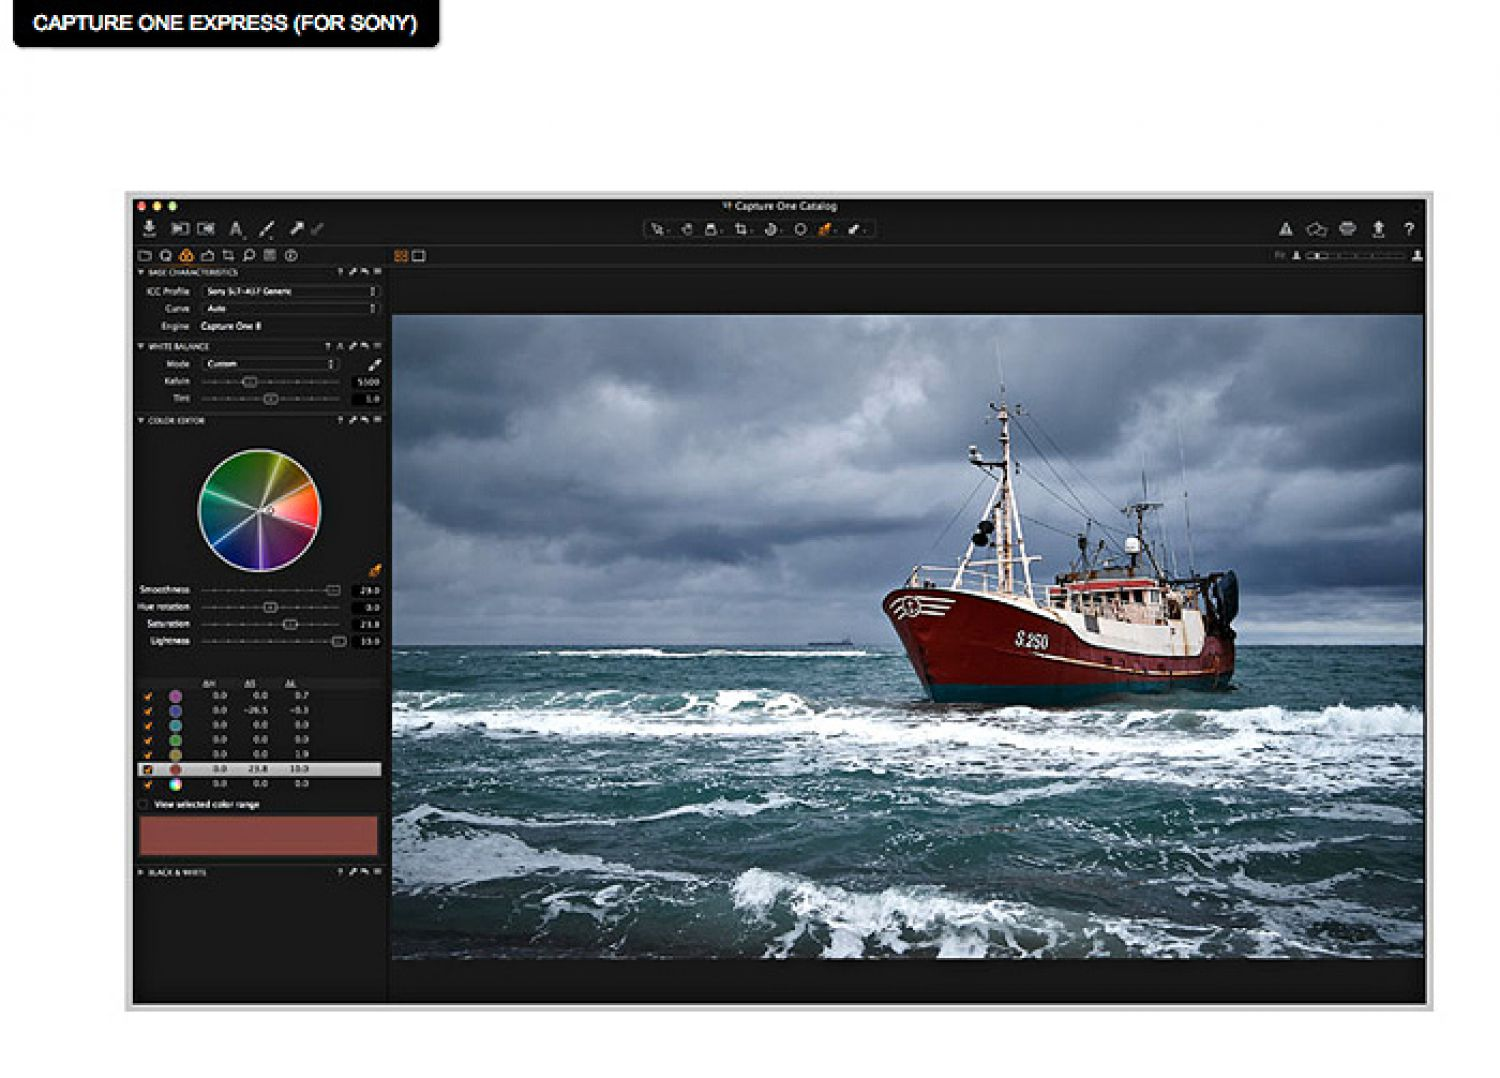 Special Capture One Software Developed For Selected Sony Cameras